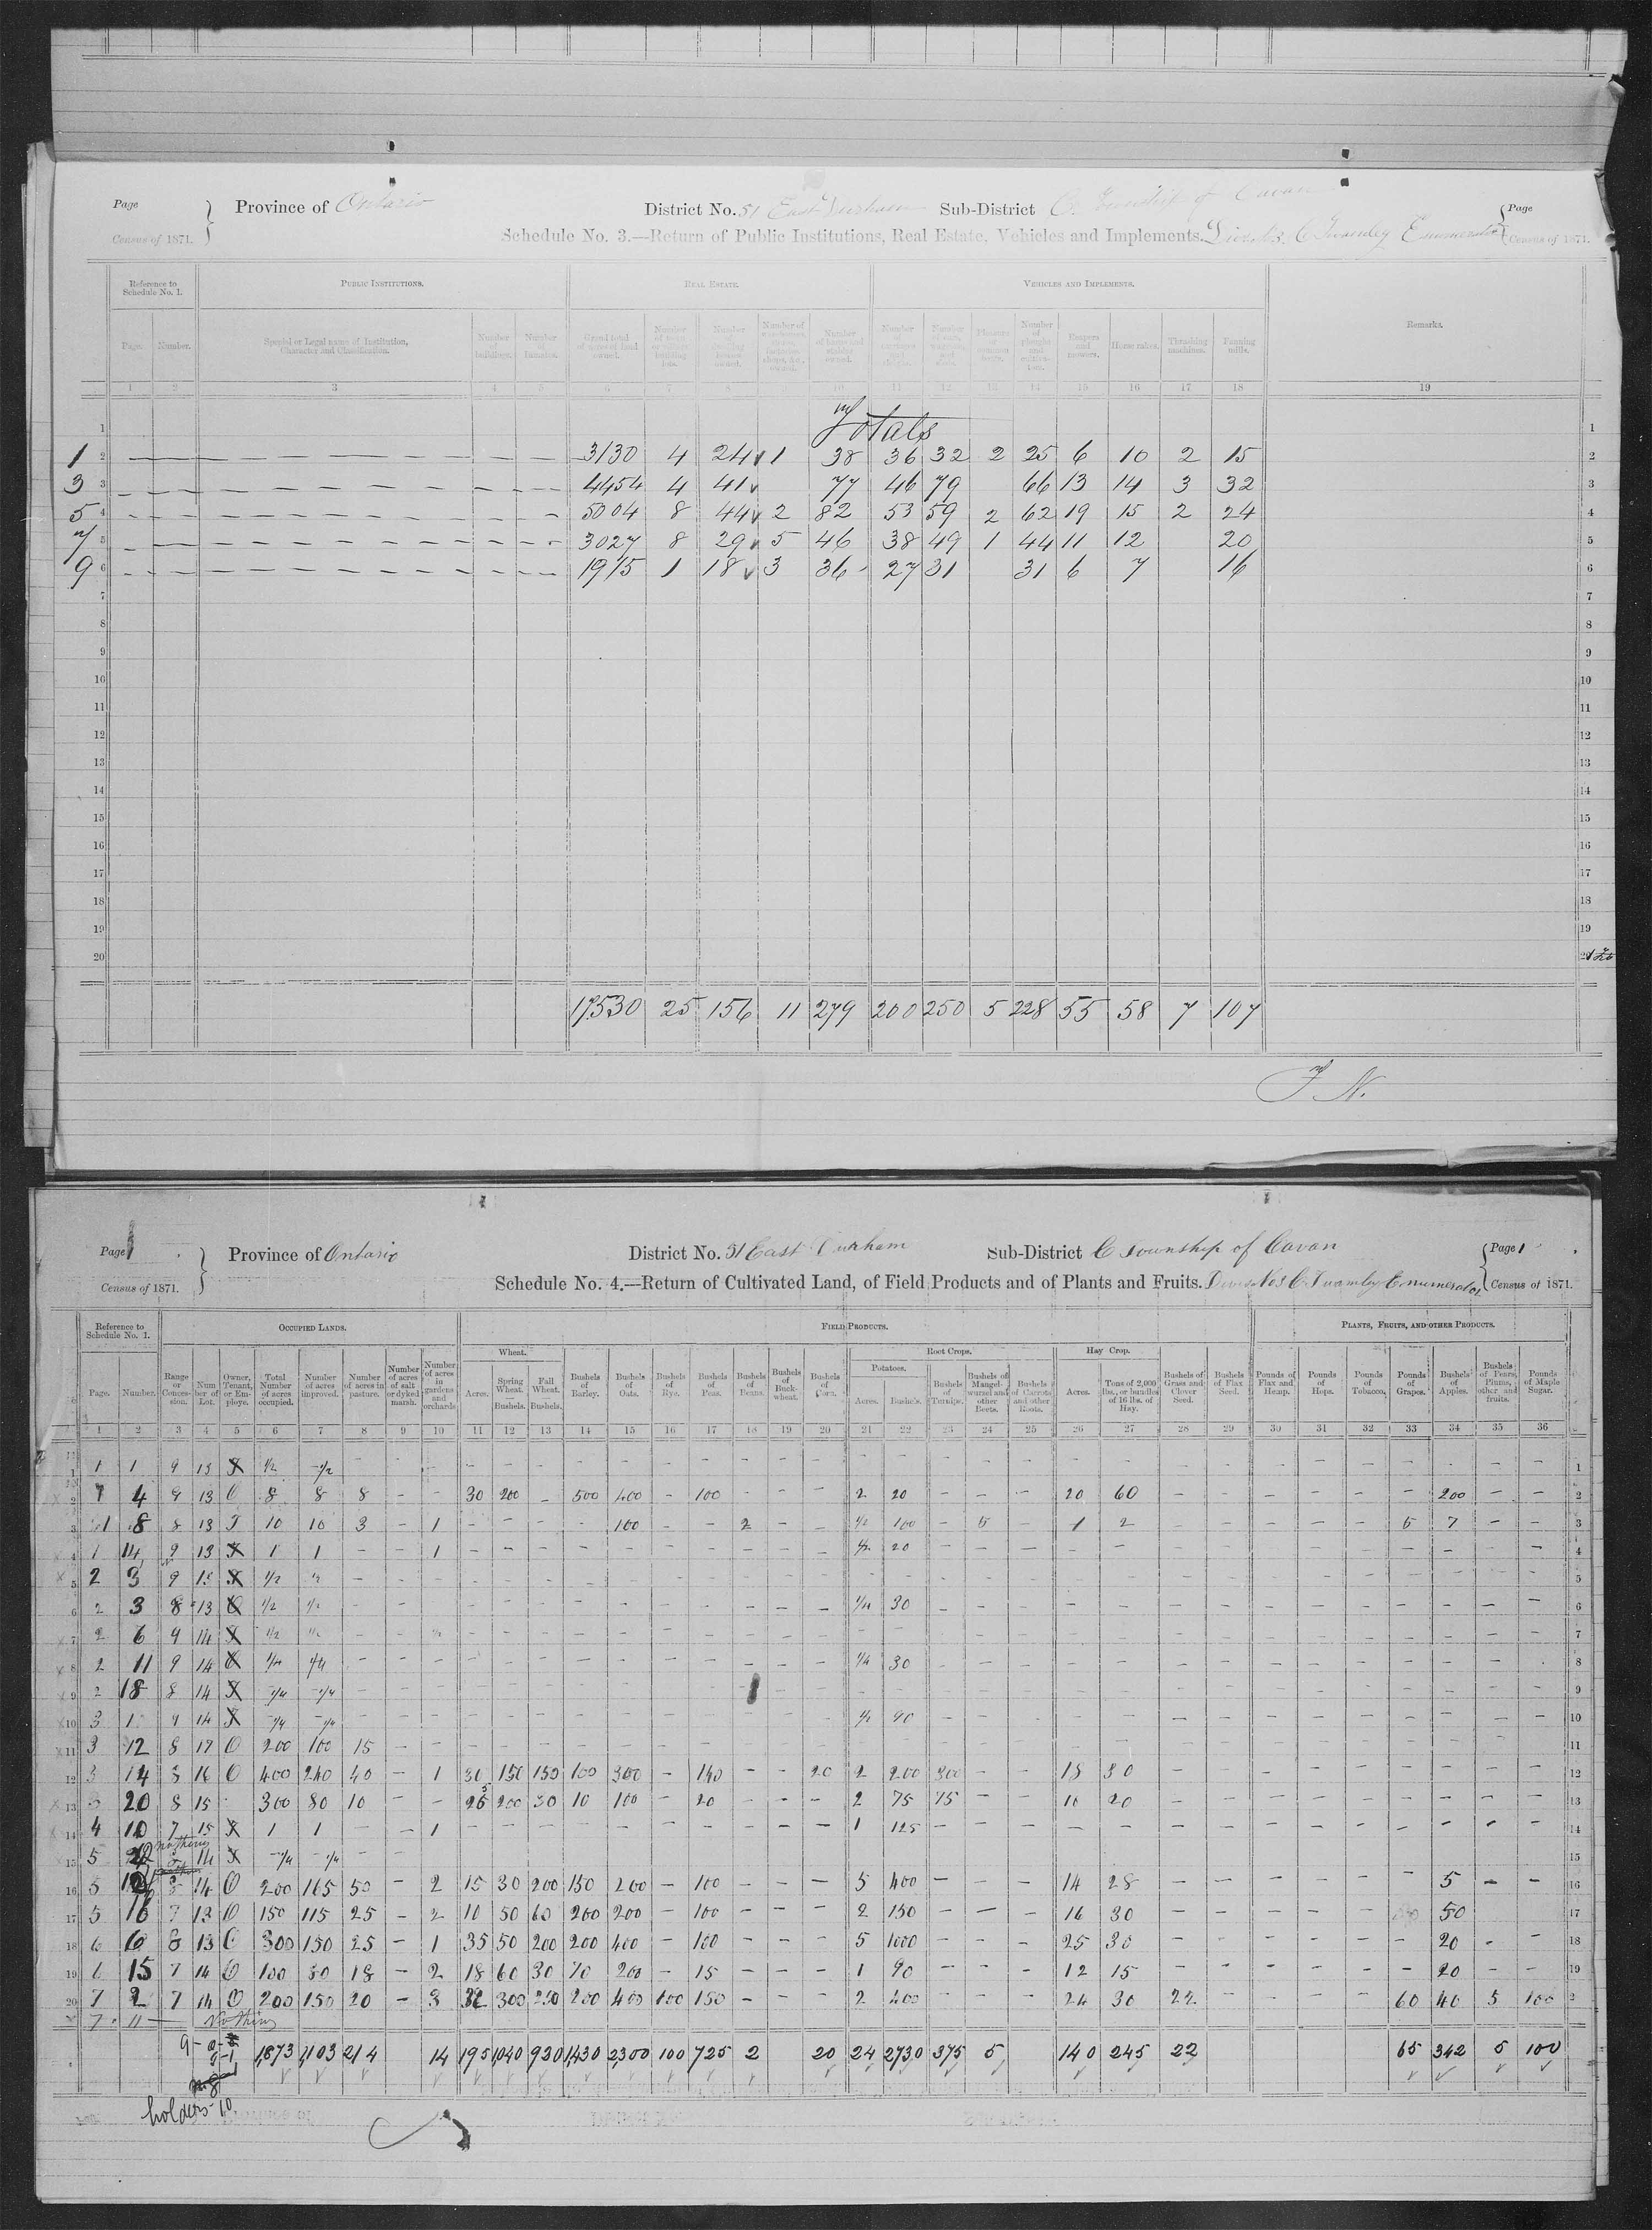 Title: Census of Canada, 1871 - Mikan Number: 142105 - Microform: c-9980